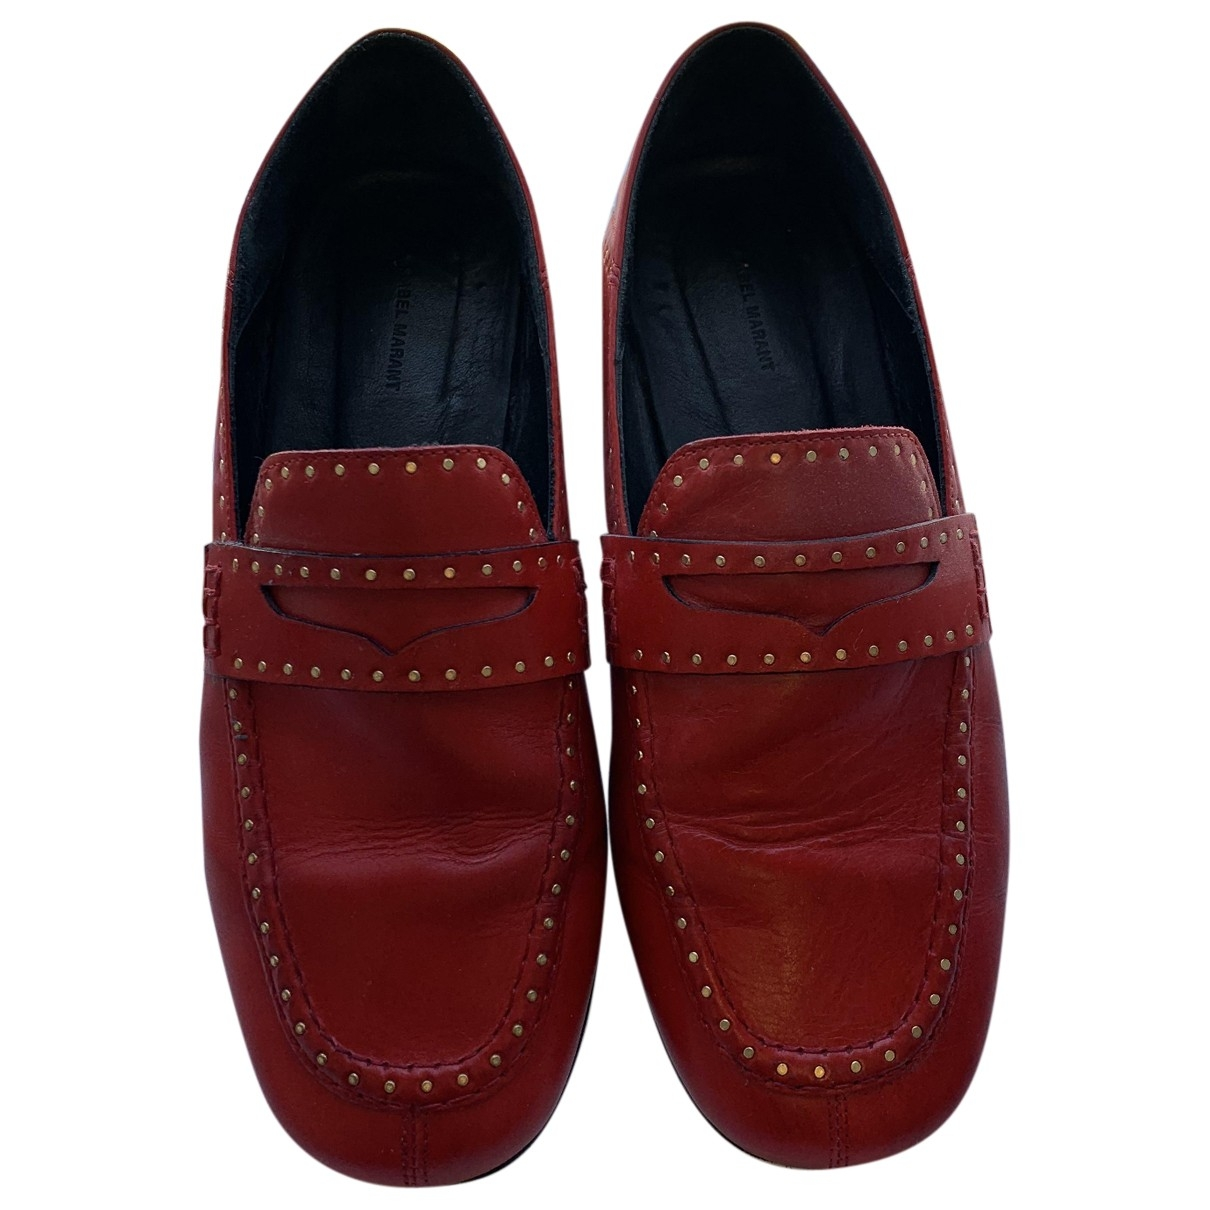 Isabel Marant Fezzy Red Leather Flats for Women 36 EU